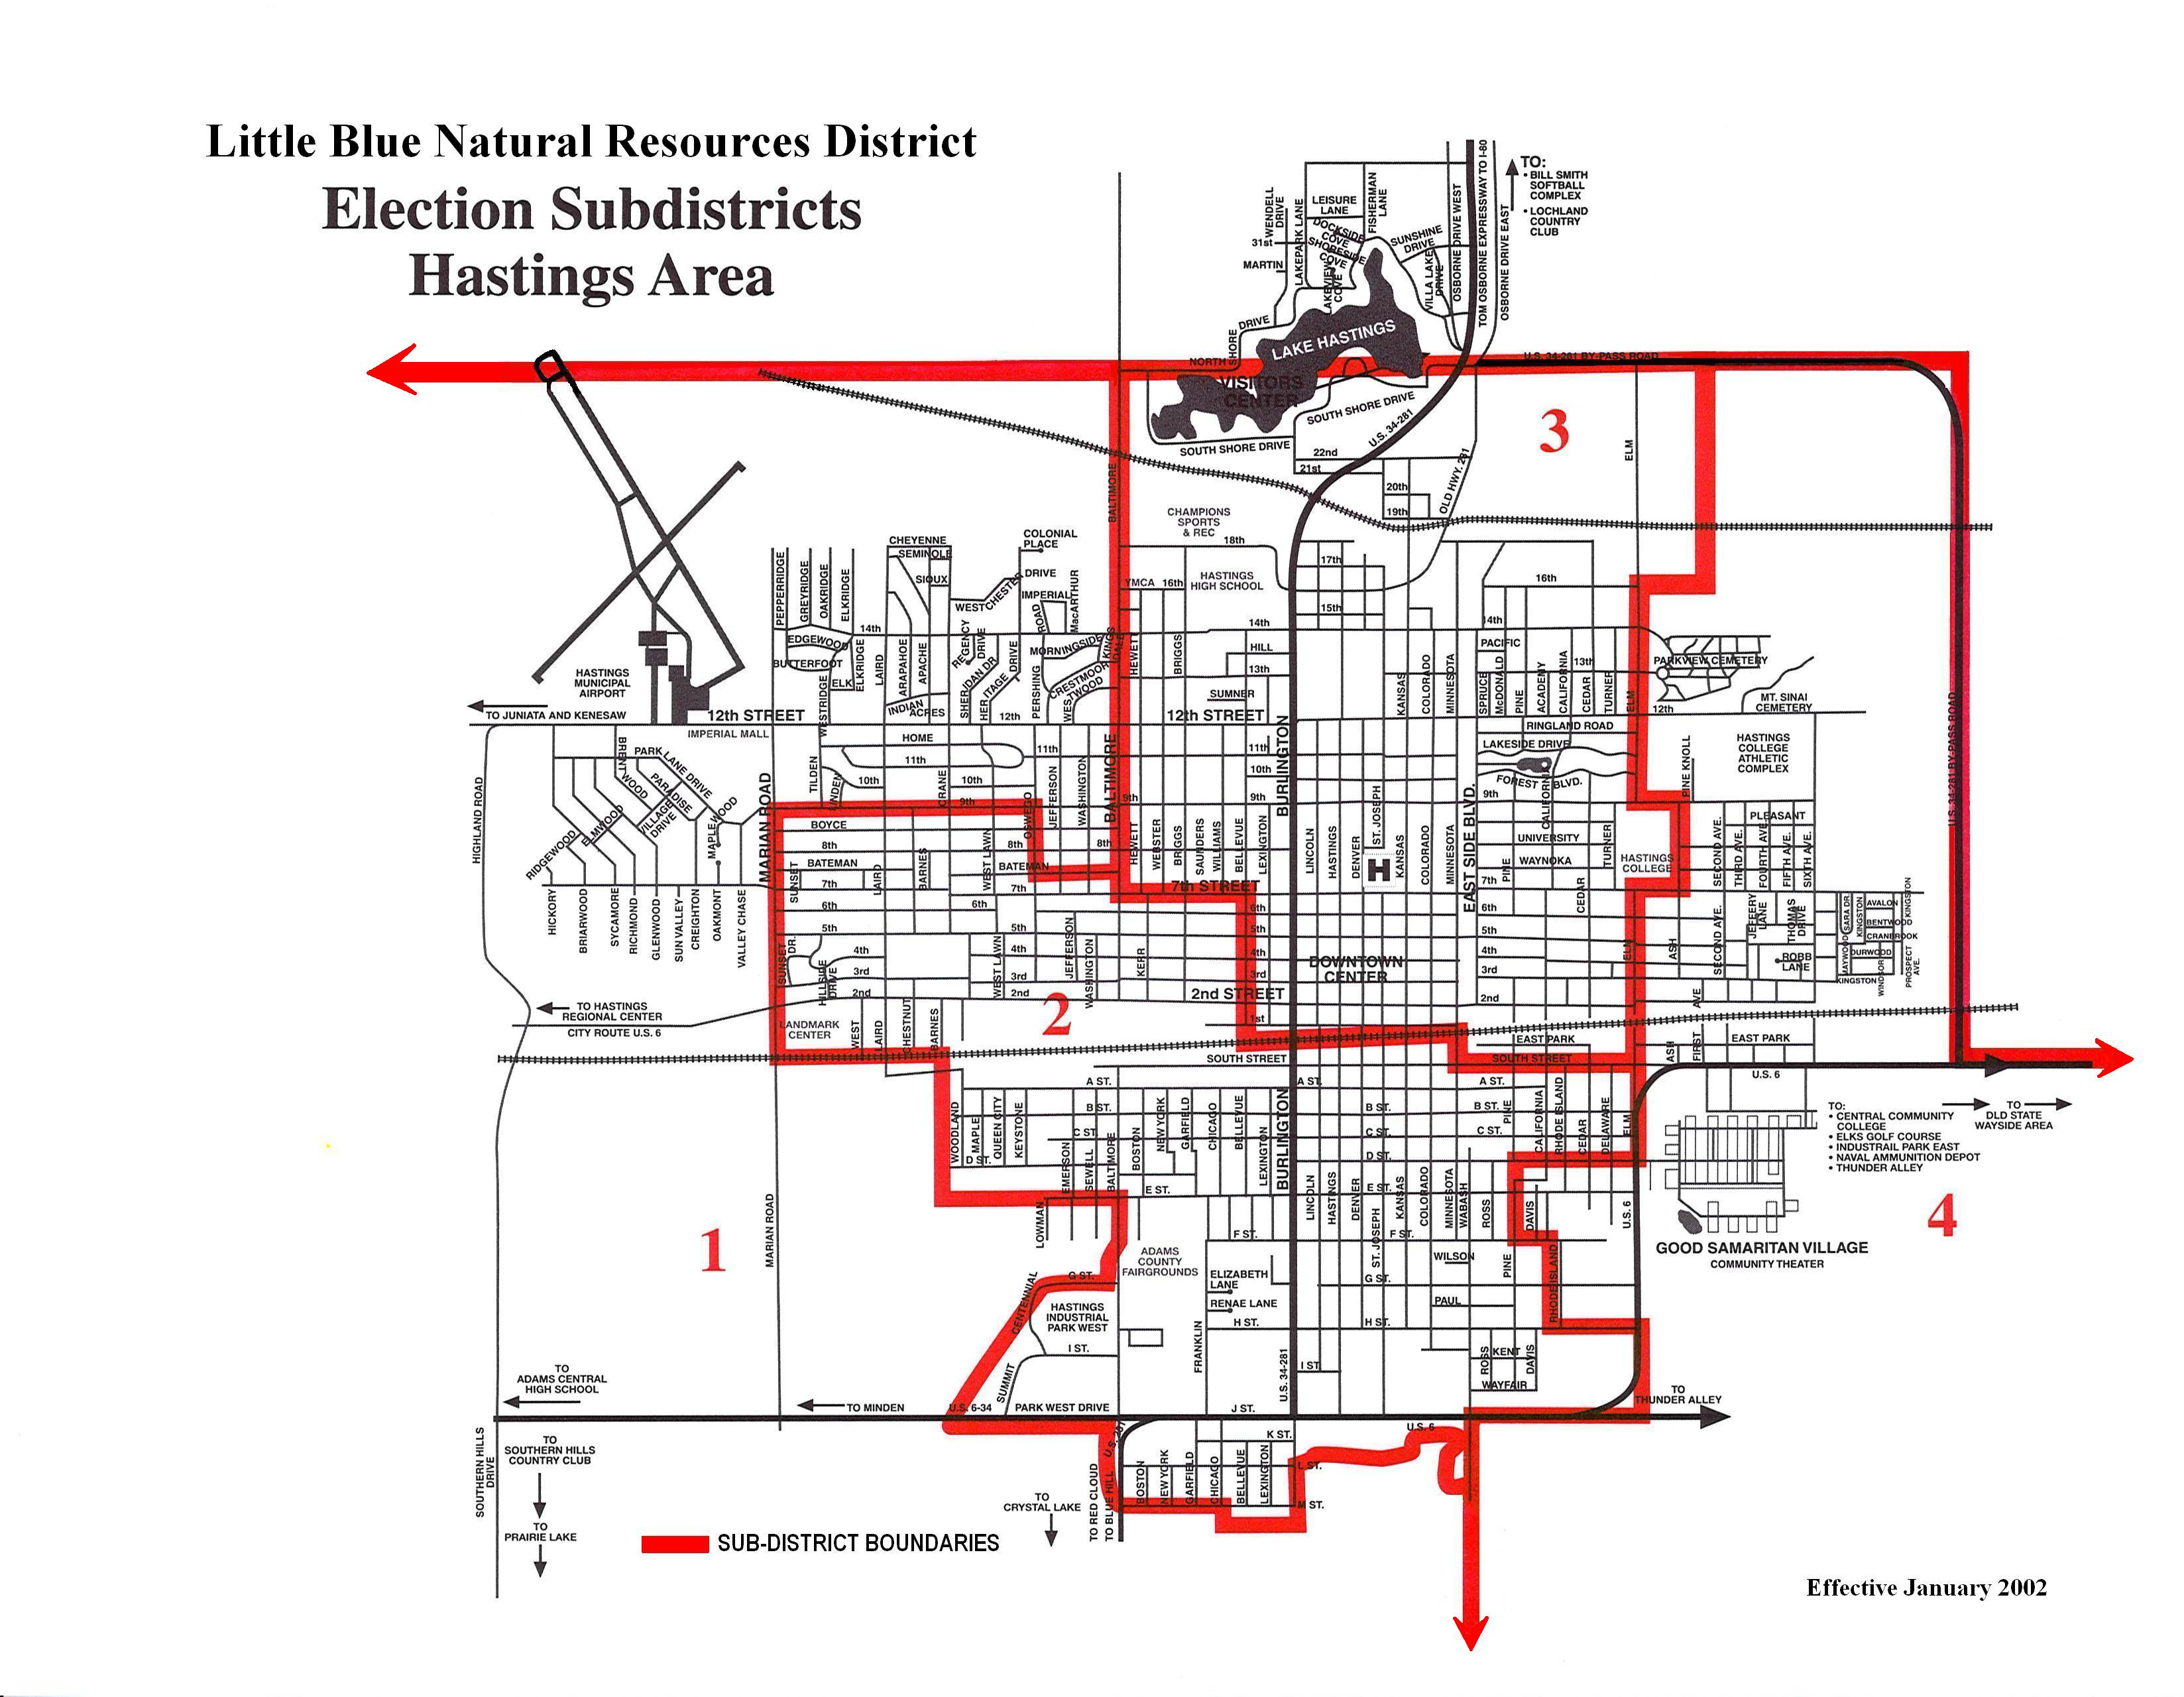 Hastings Subdistricts(2)